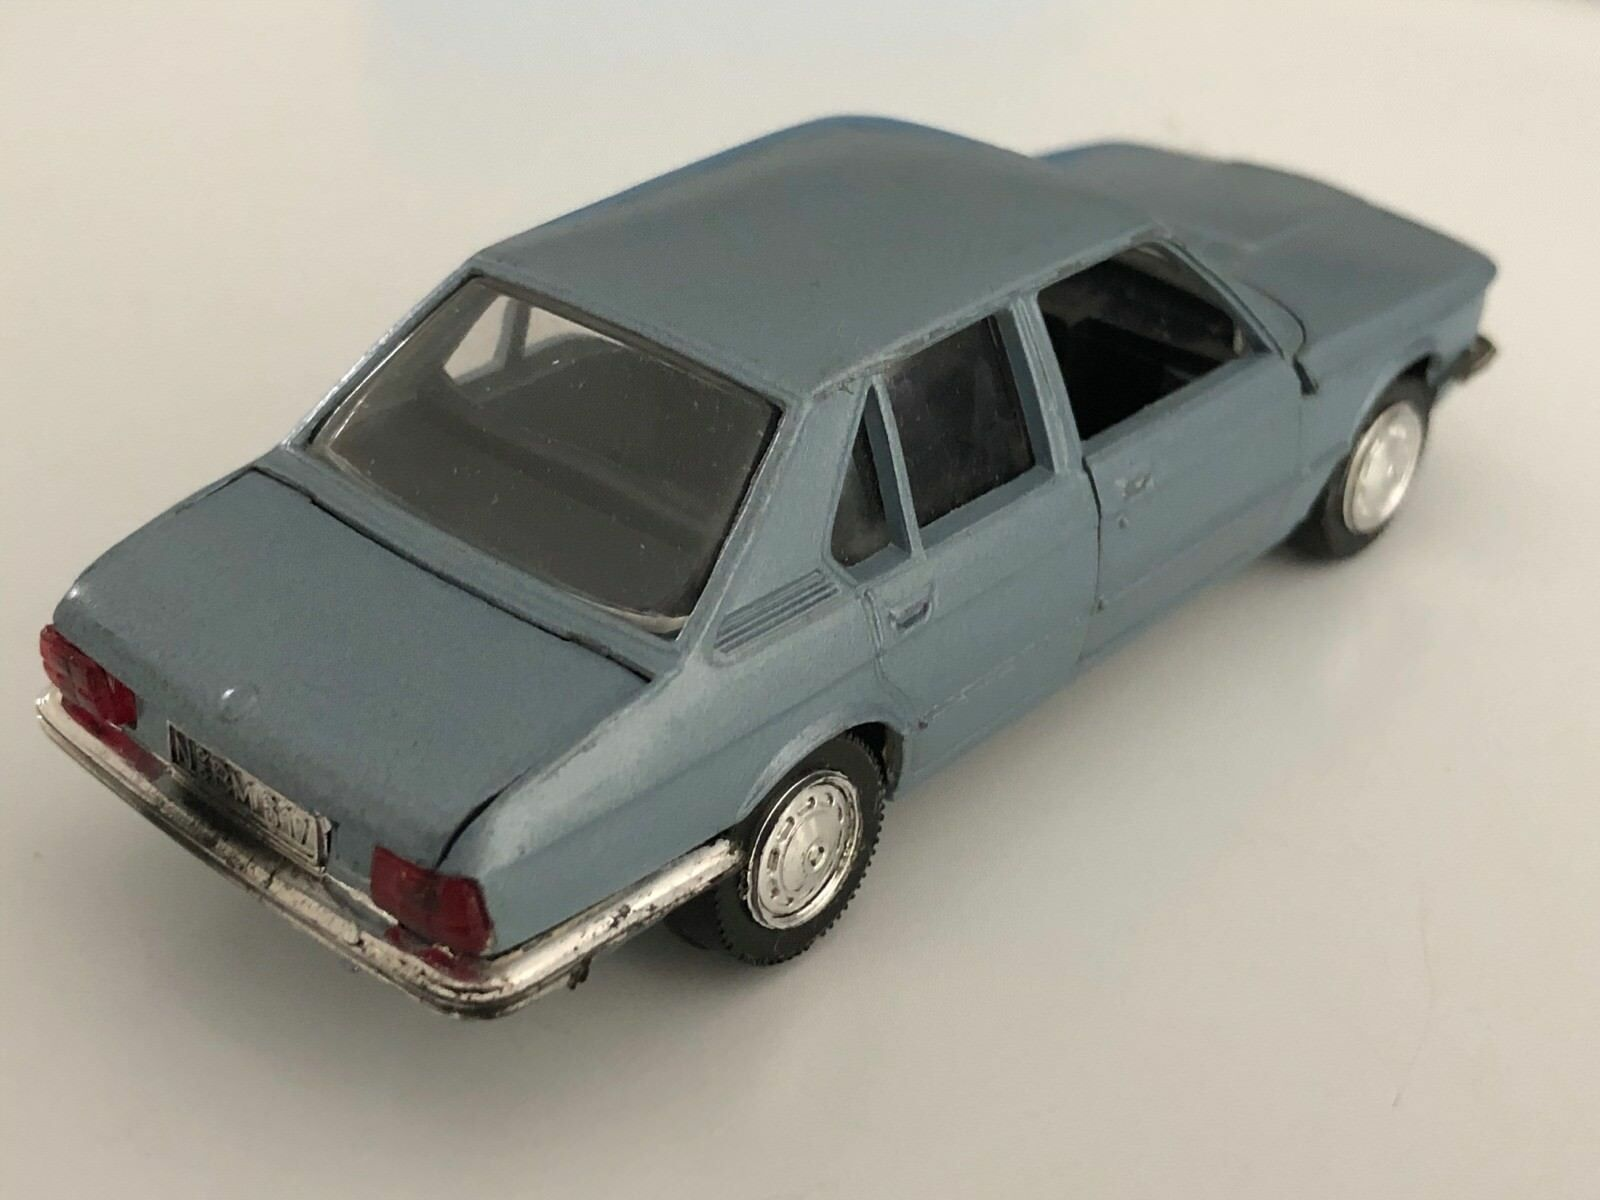 Rare and Collectable Schuco BMW 525 E12 in in in Saphire bluee Metallic 098131